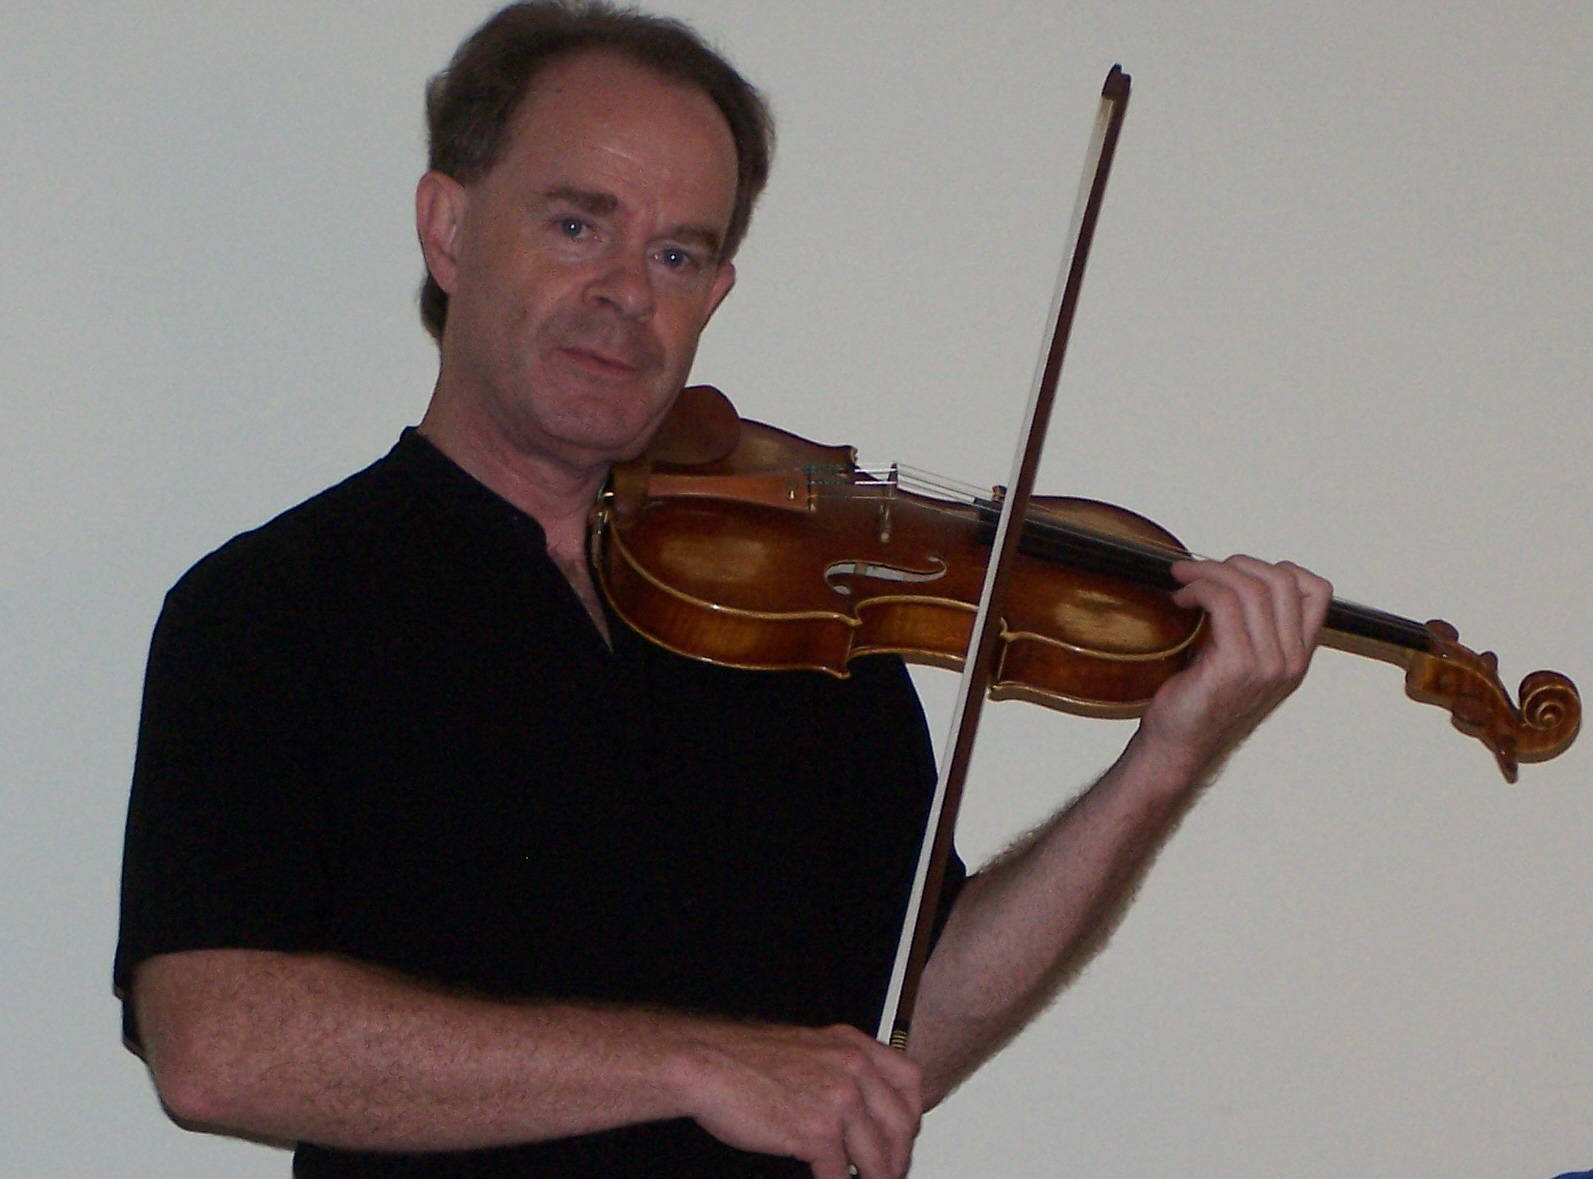 Picture of Pat Ireland holding his violin